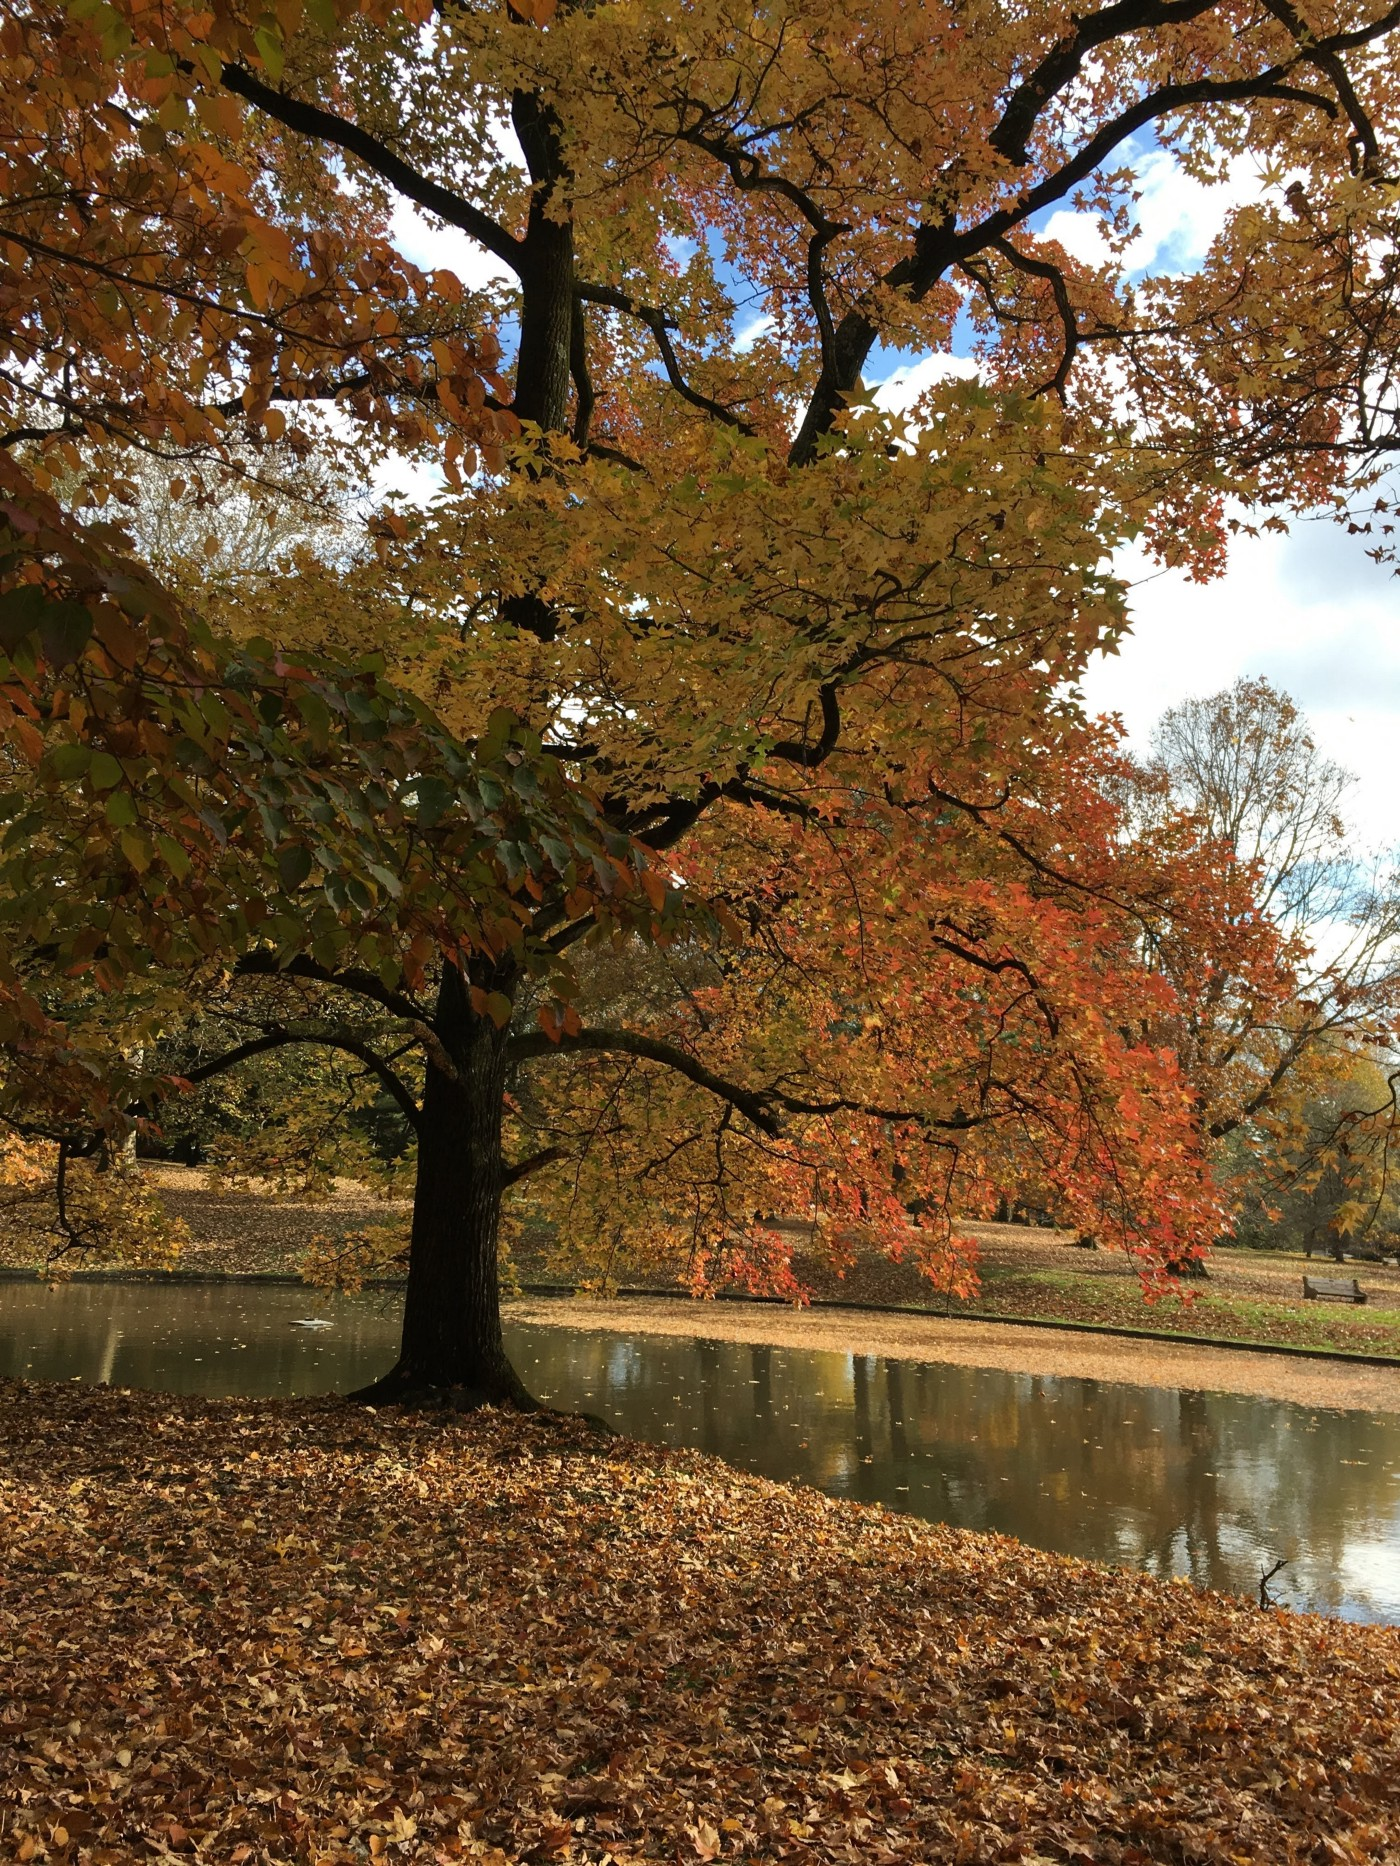 A large tree with colorful autumn leaves stands near a pond. The tree is reflected in the pond. In the distance fallen leaves scatter over grass.